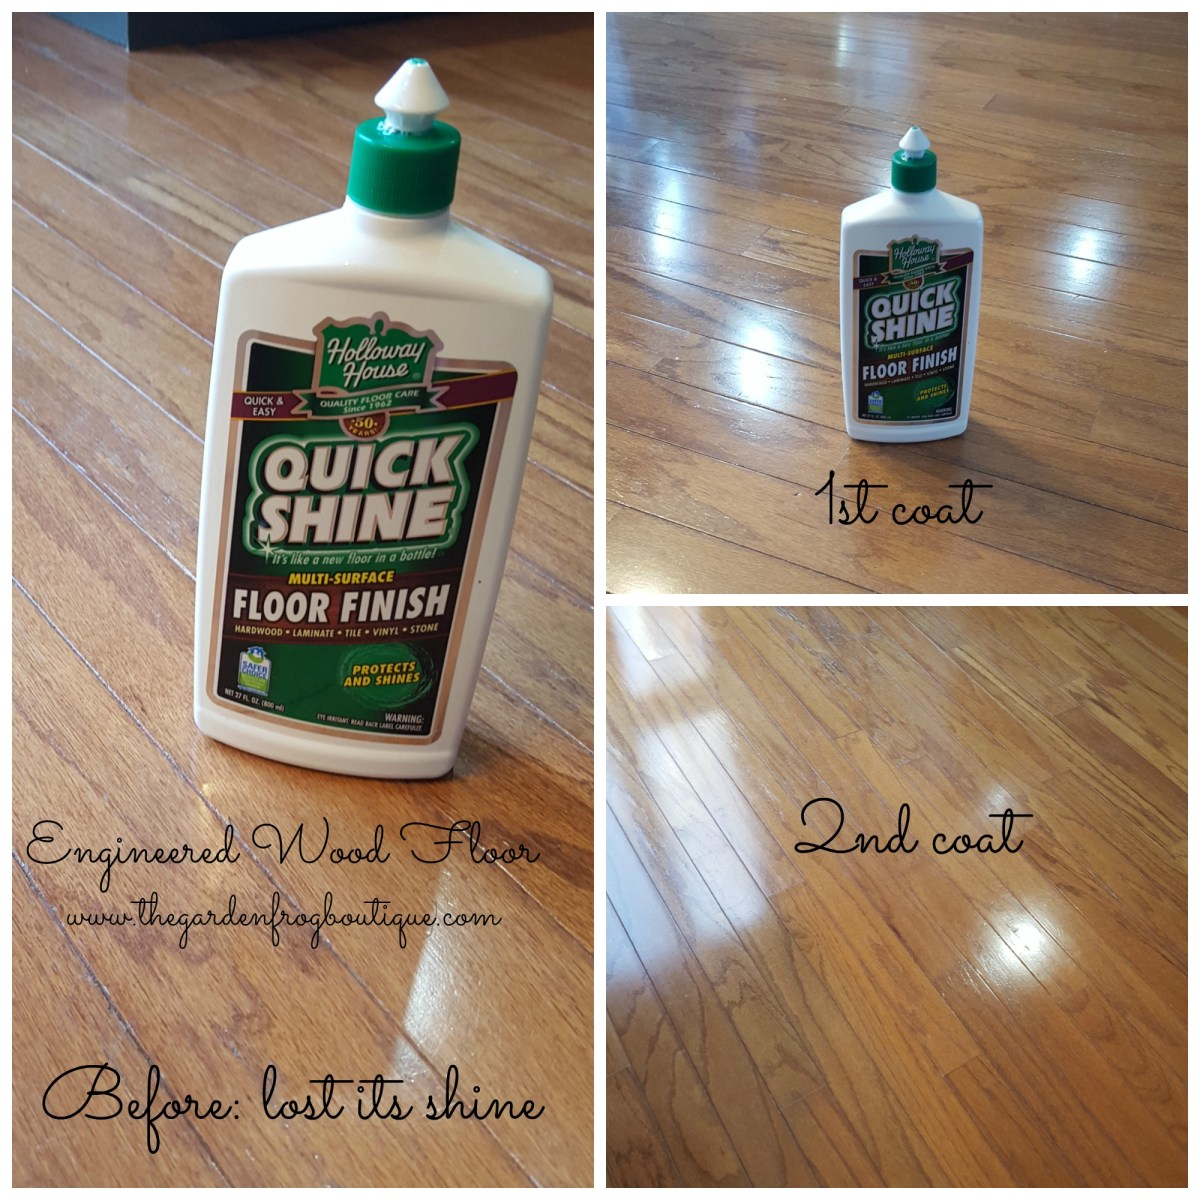 How I Shined my Wood Floors for $6